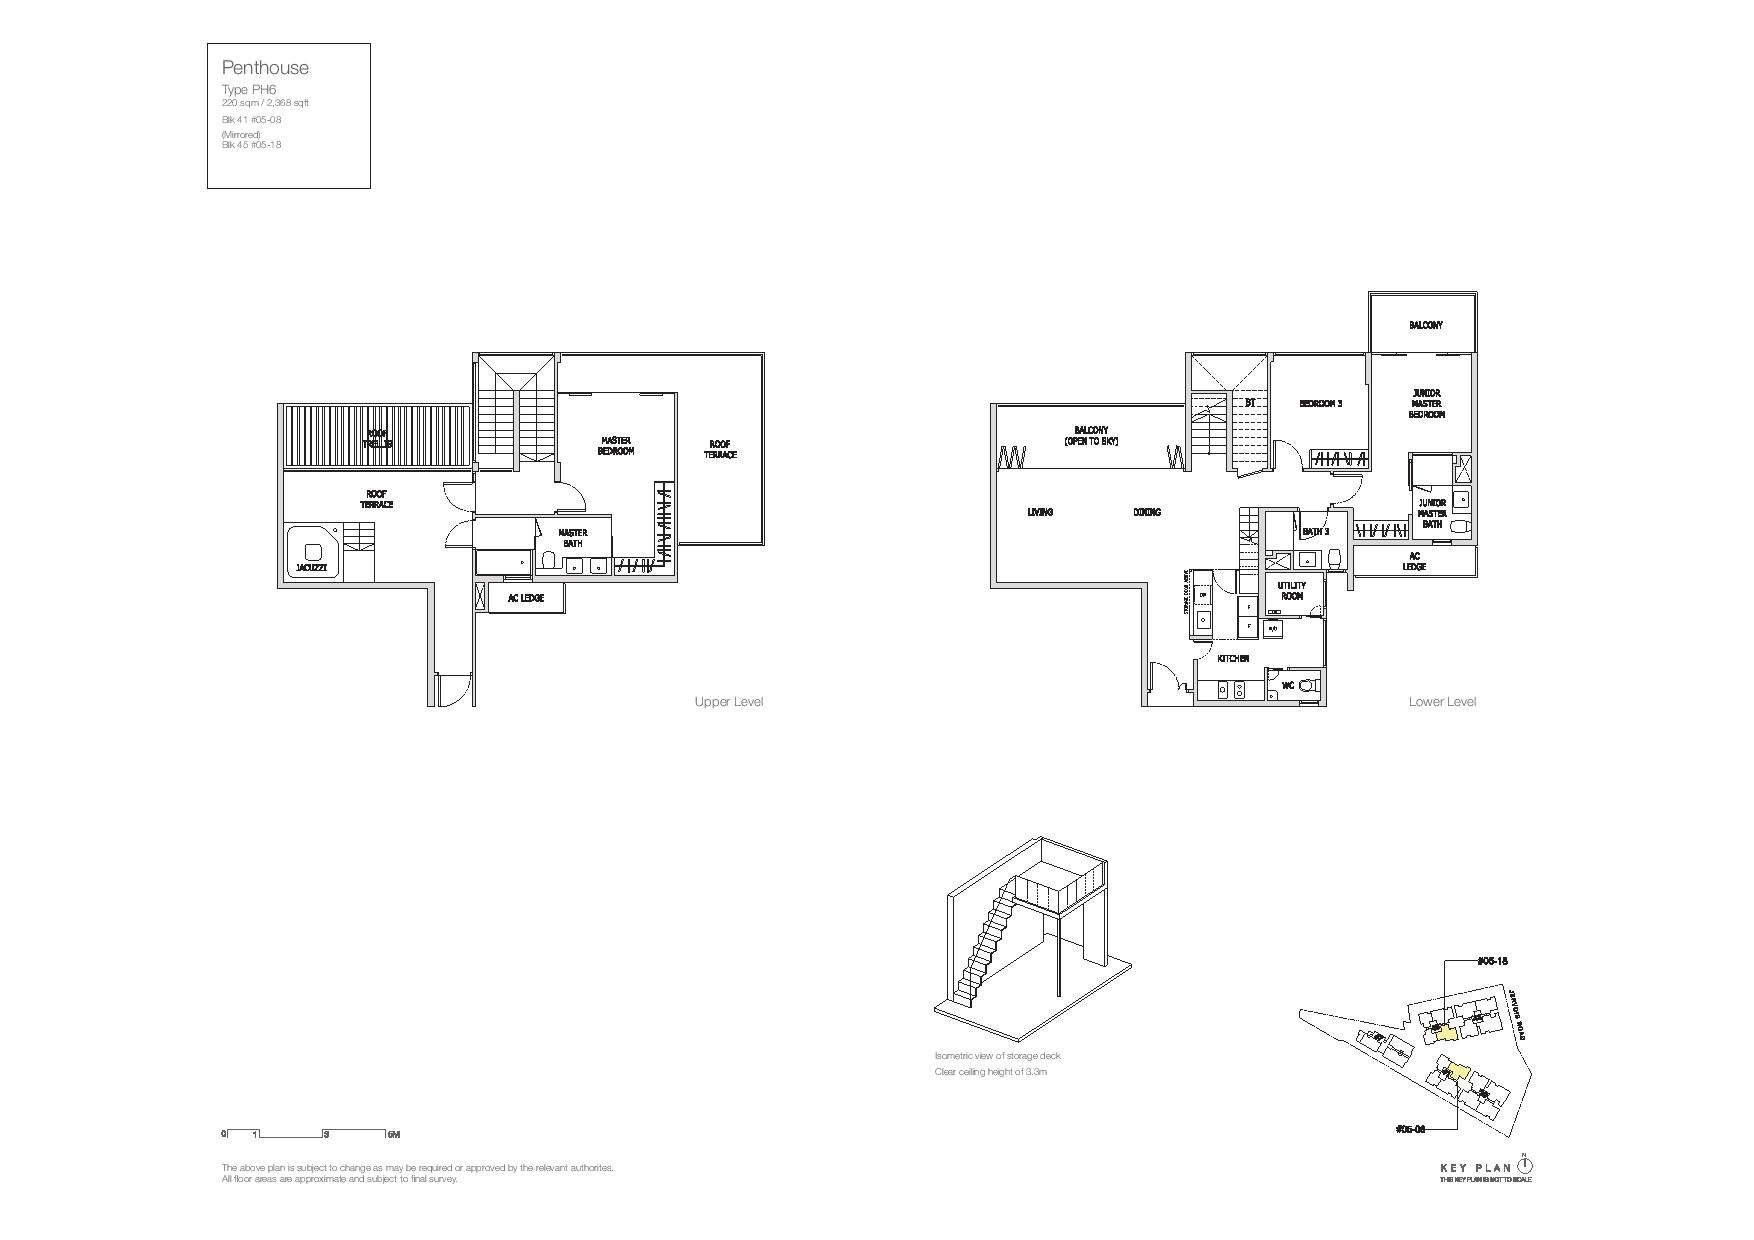 Mon Jervois Penthouse Floor Plans Type PH6